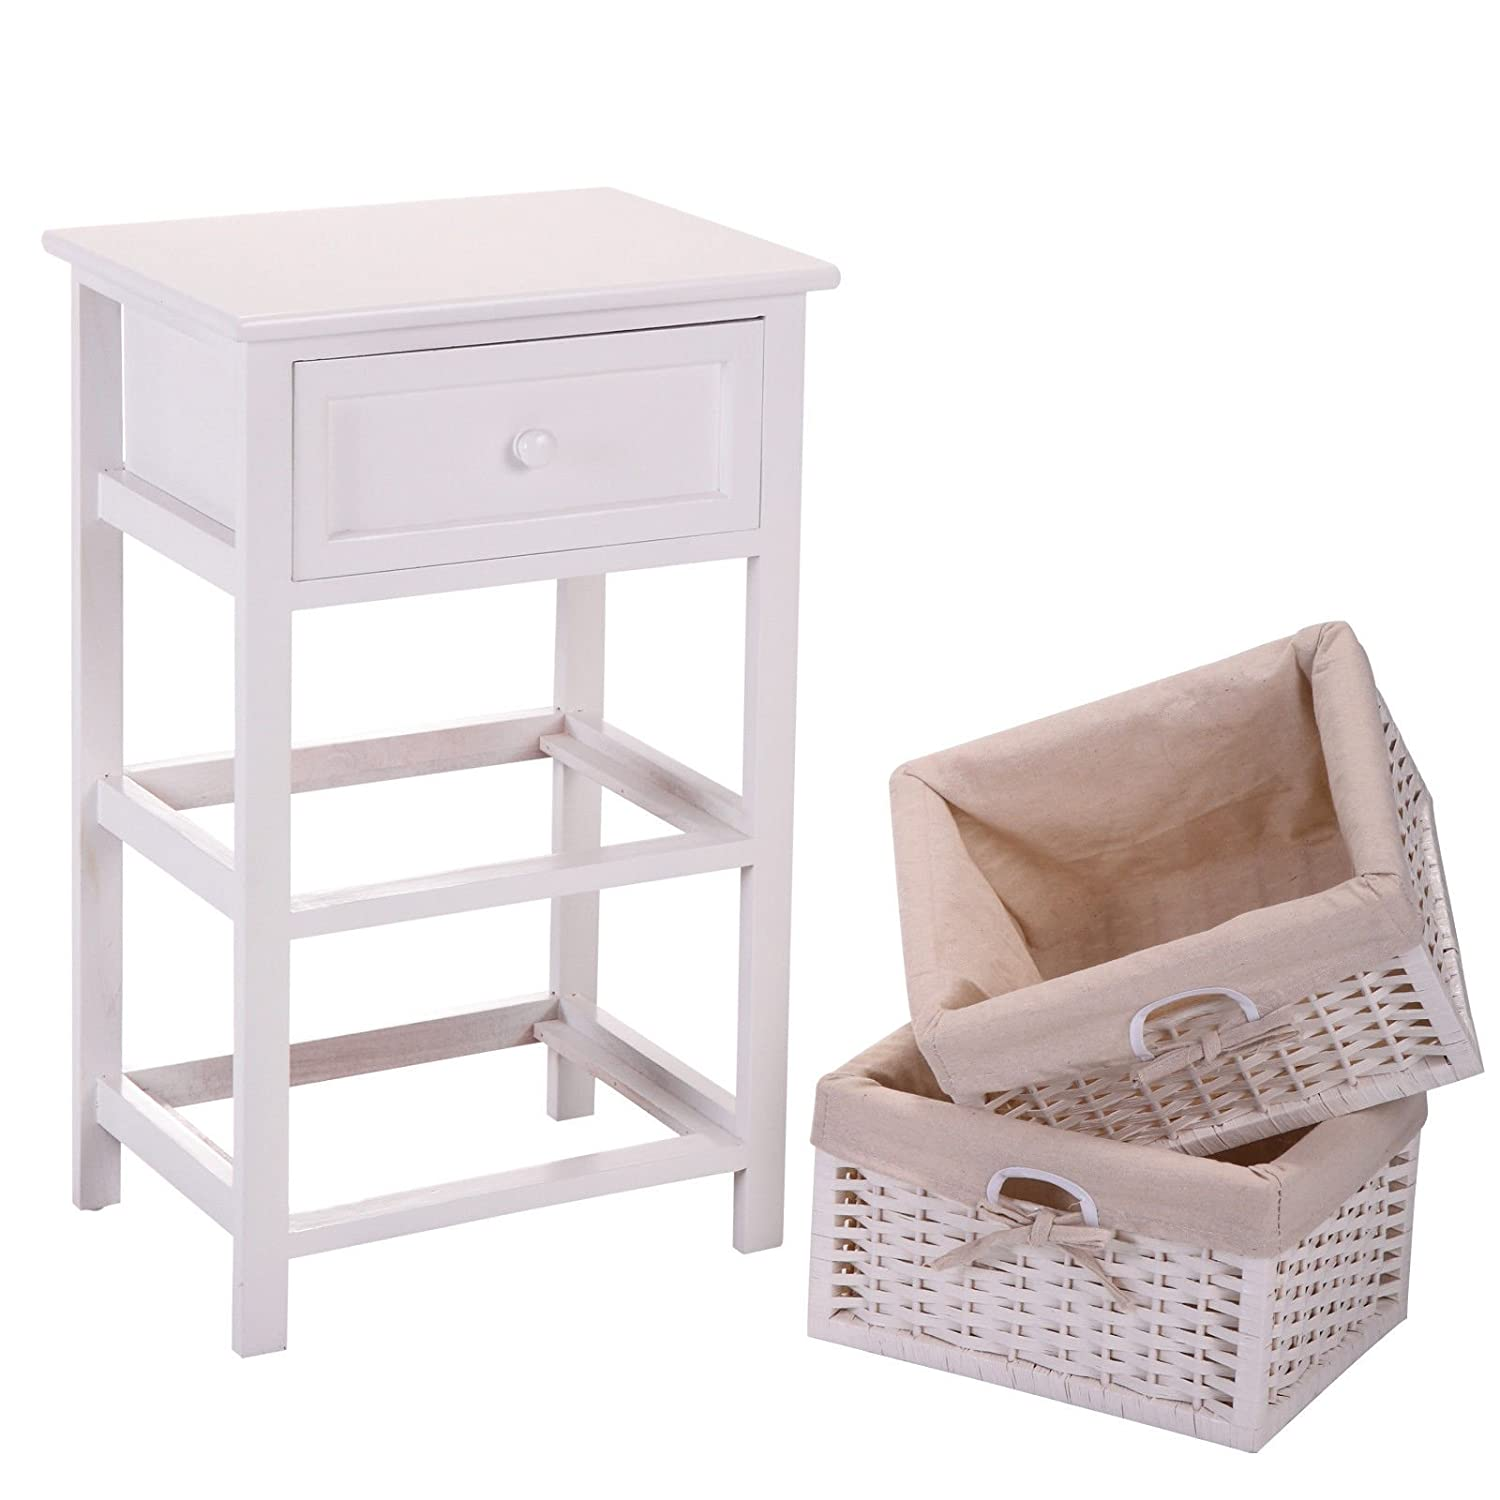 Amazon com lazymoon white nightstand end side table 3 tiers 1 drawer bedroom home storage furniture w 2 wicker basket kitchen dining